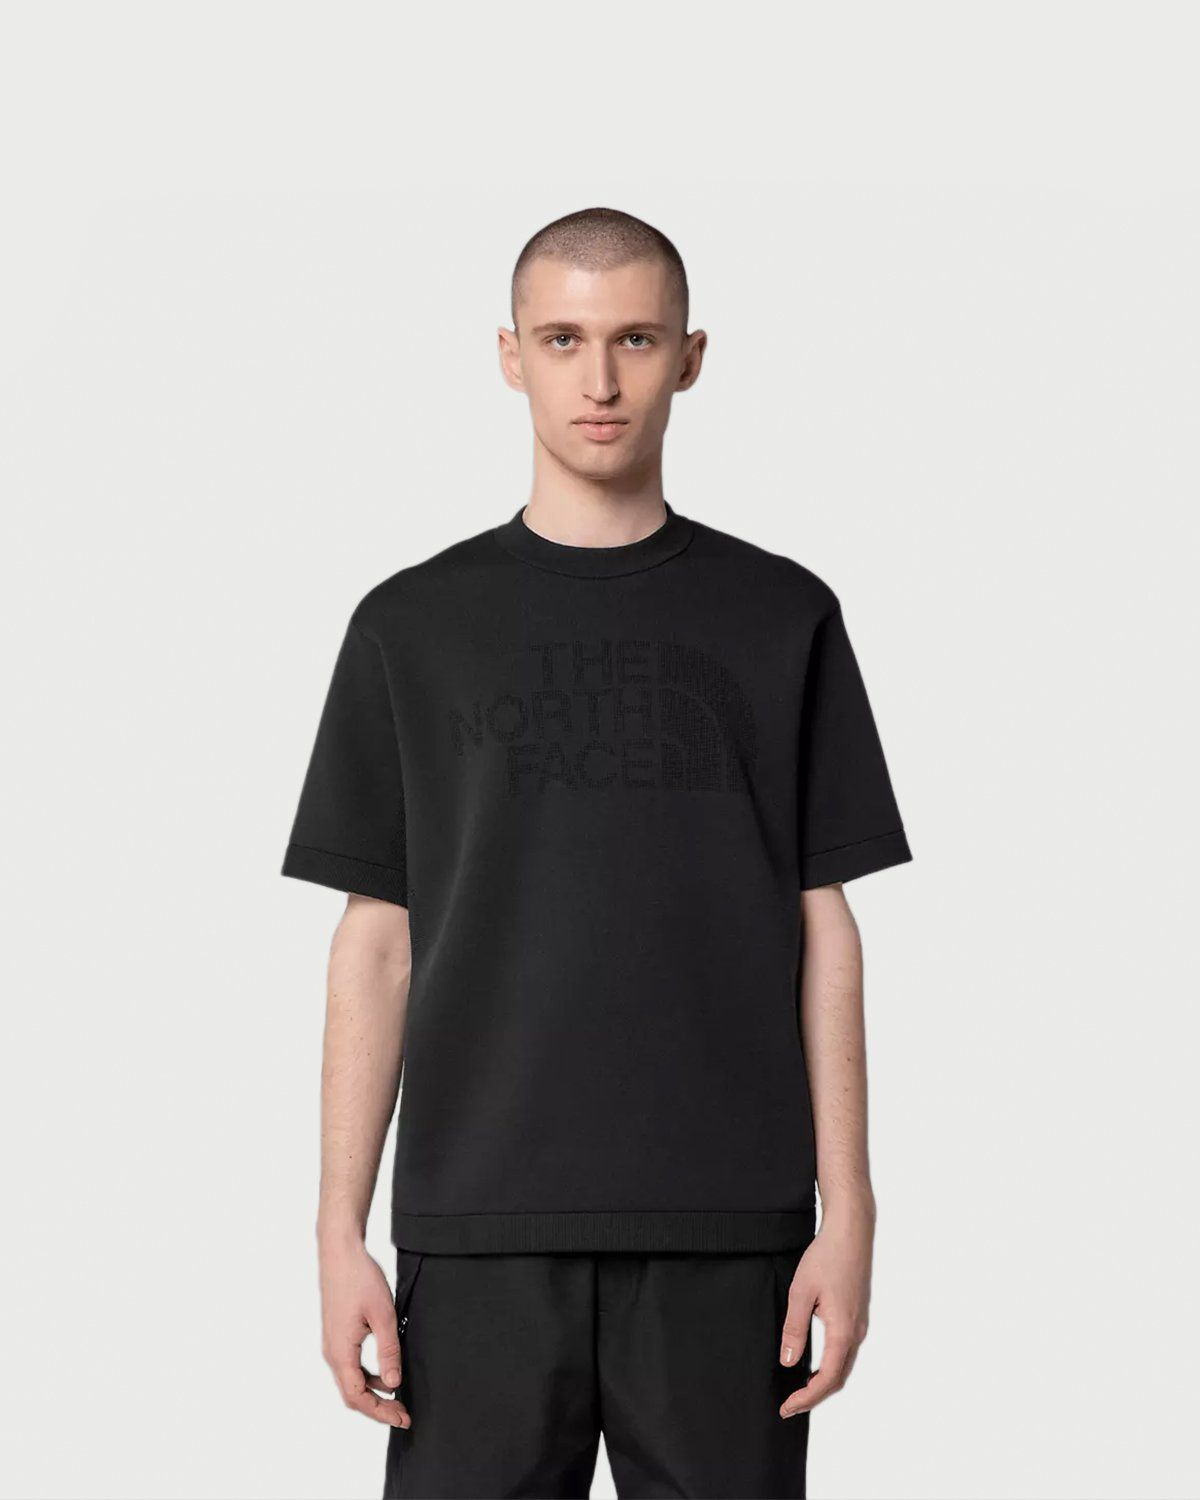 The North Face Black Series - Engineered Knit T-Shirt Black - Image 4